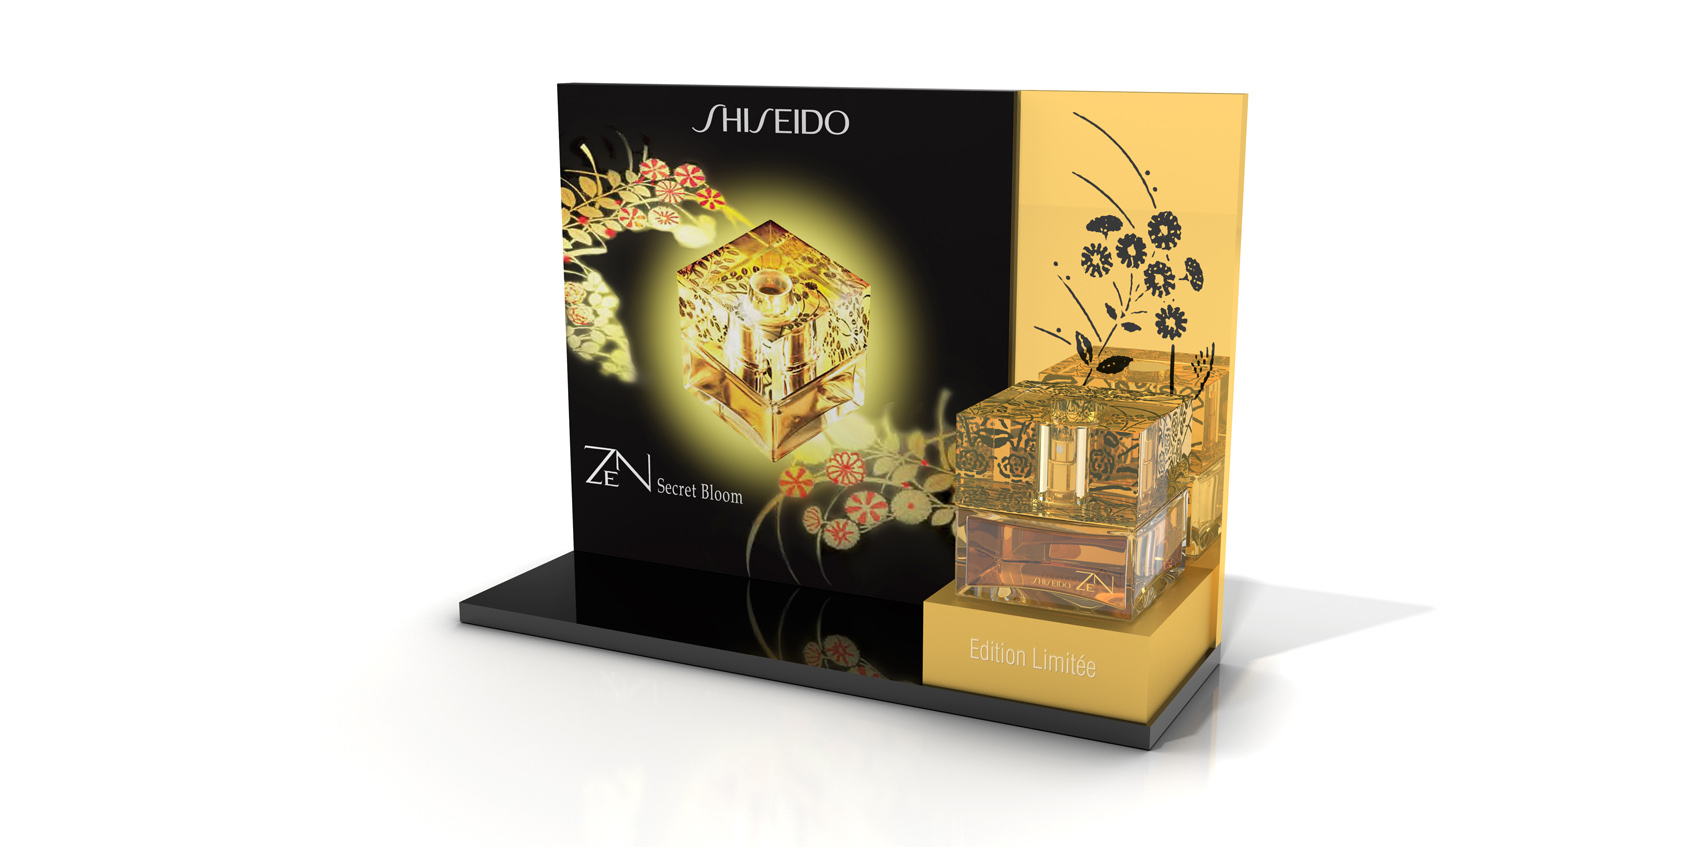 Display Shiseido Fragrance Zen 2013 Freelance 3d